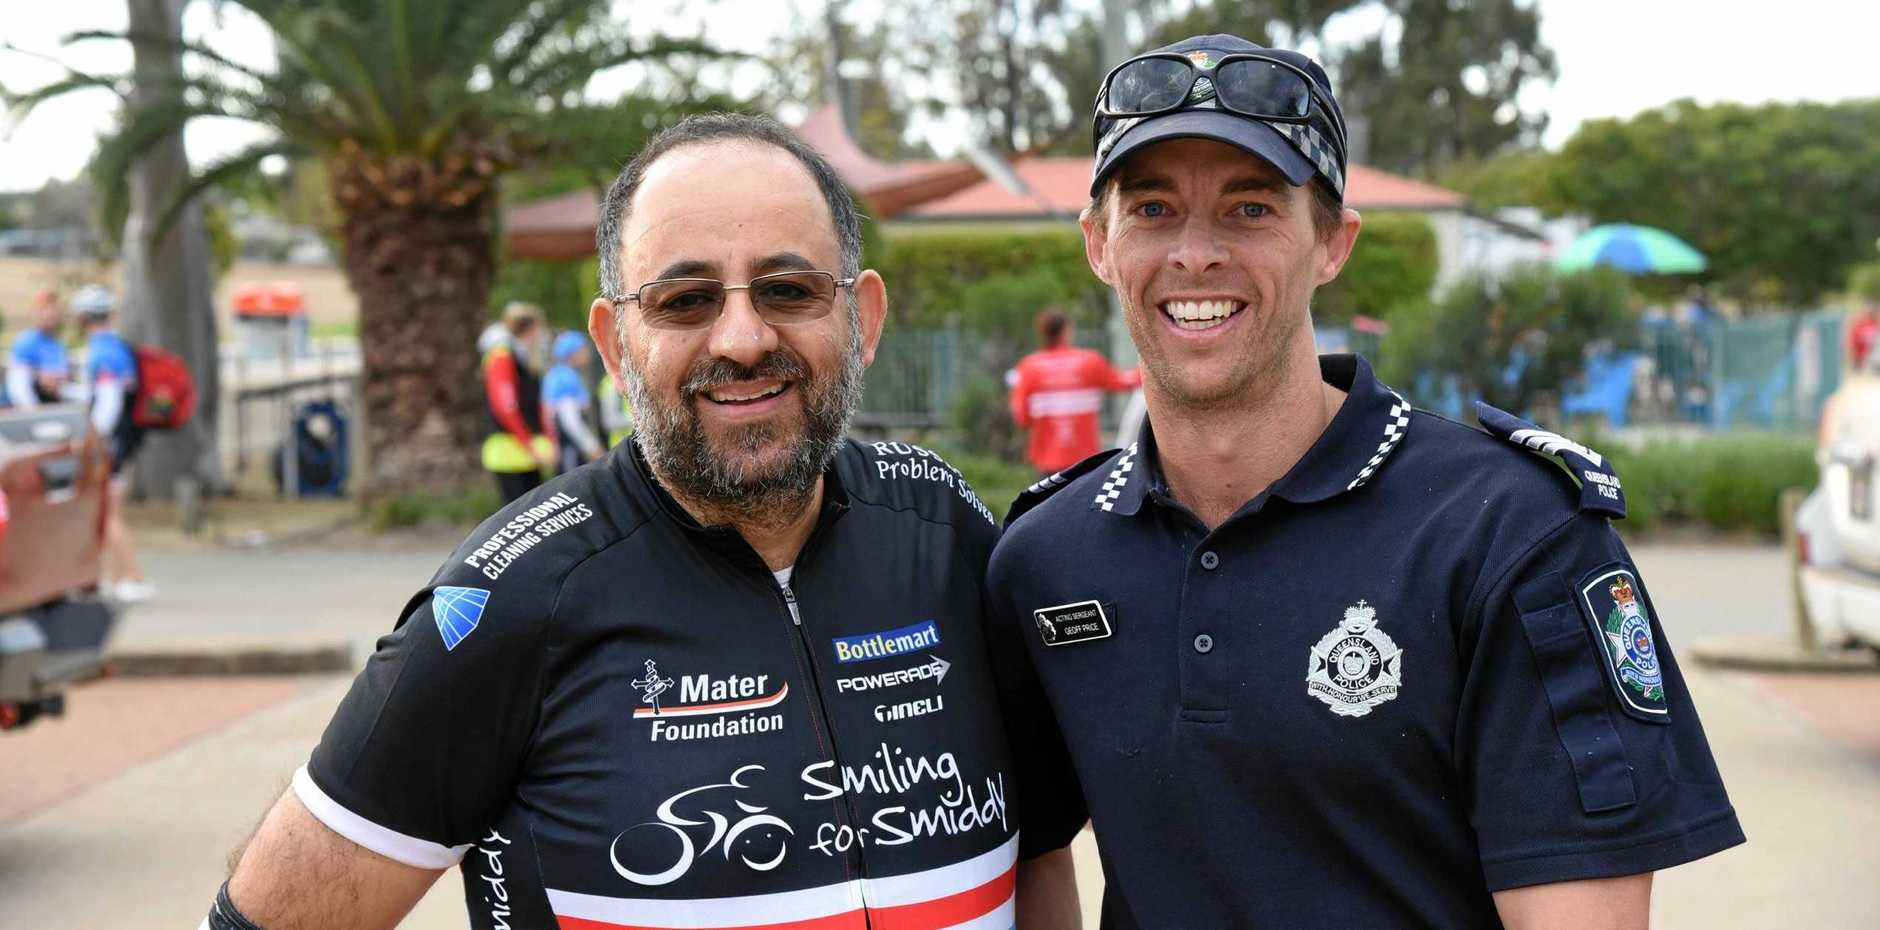 Visht Singh and acting sergeant Geoff Price at the 14th annual 1600km Bottlemart Smiling for Smiddy Challenge as it passed through Mundubbera on Thursday, August 29.